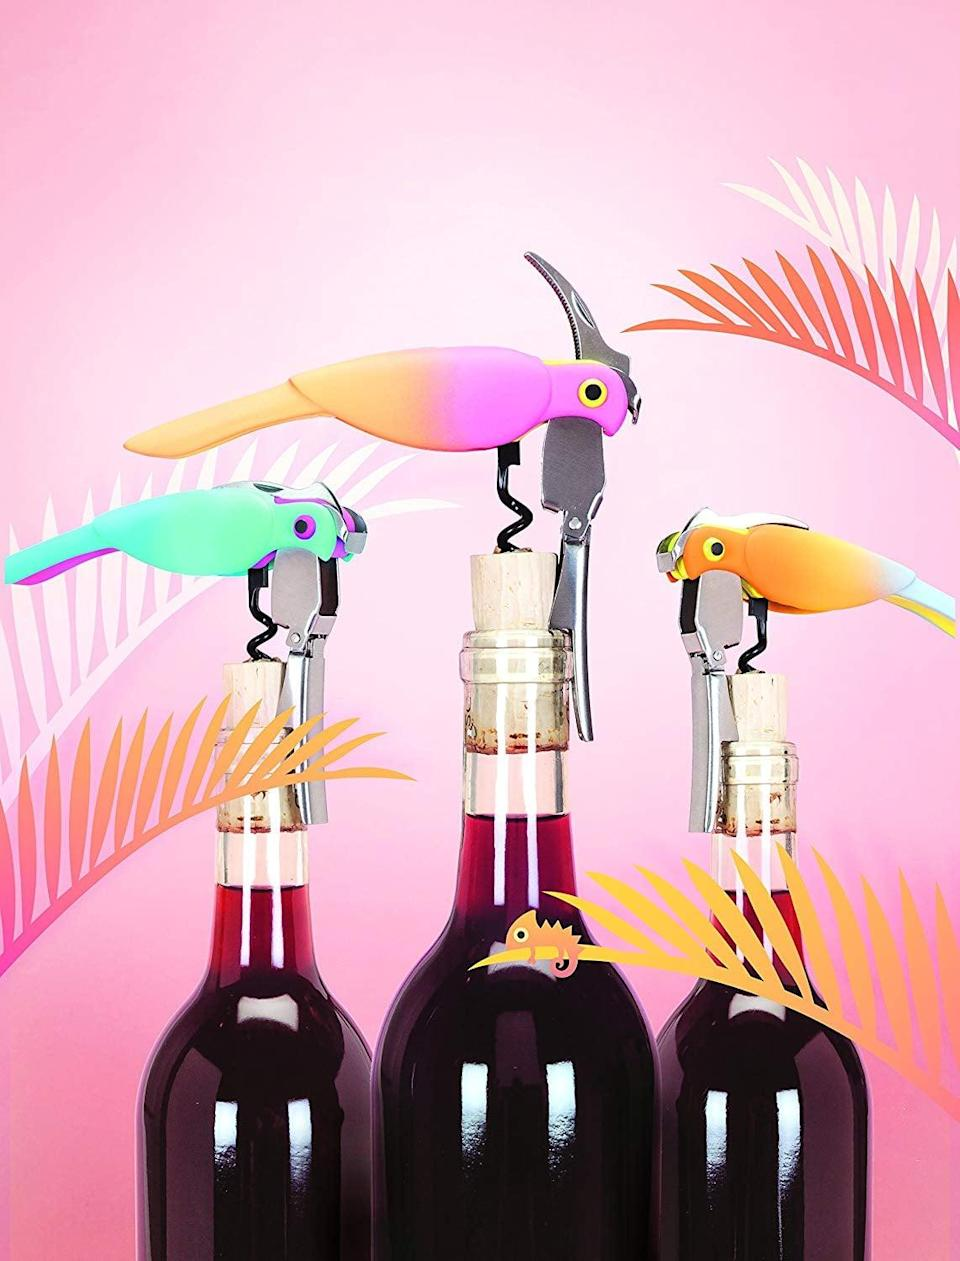 <p>These <span>True Zoo Corkatoo Corkscrews</span> ($14, originally $20) are so cute, they'll be at the center of every wine happy hour. The design is just so playful and clever.</p>